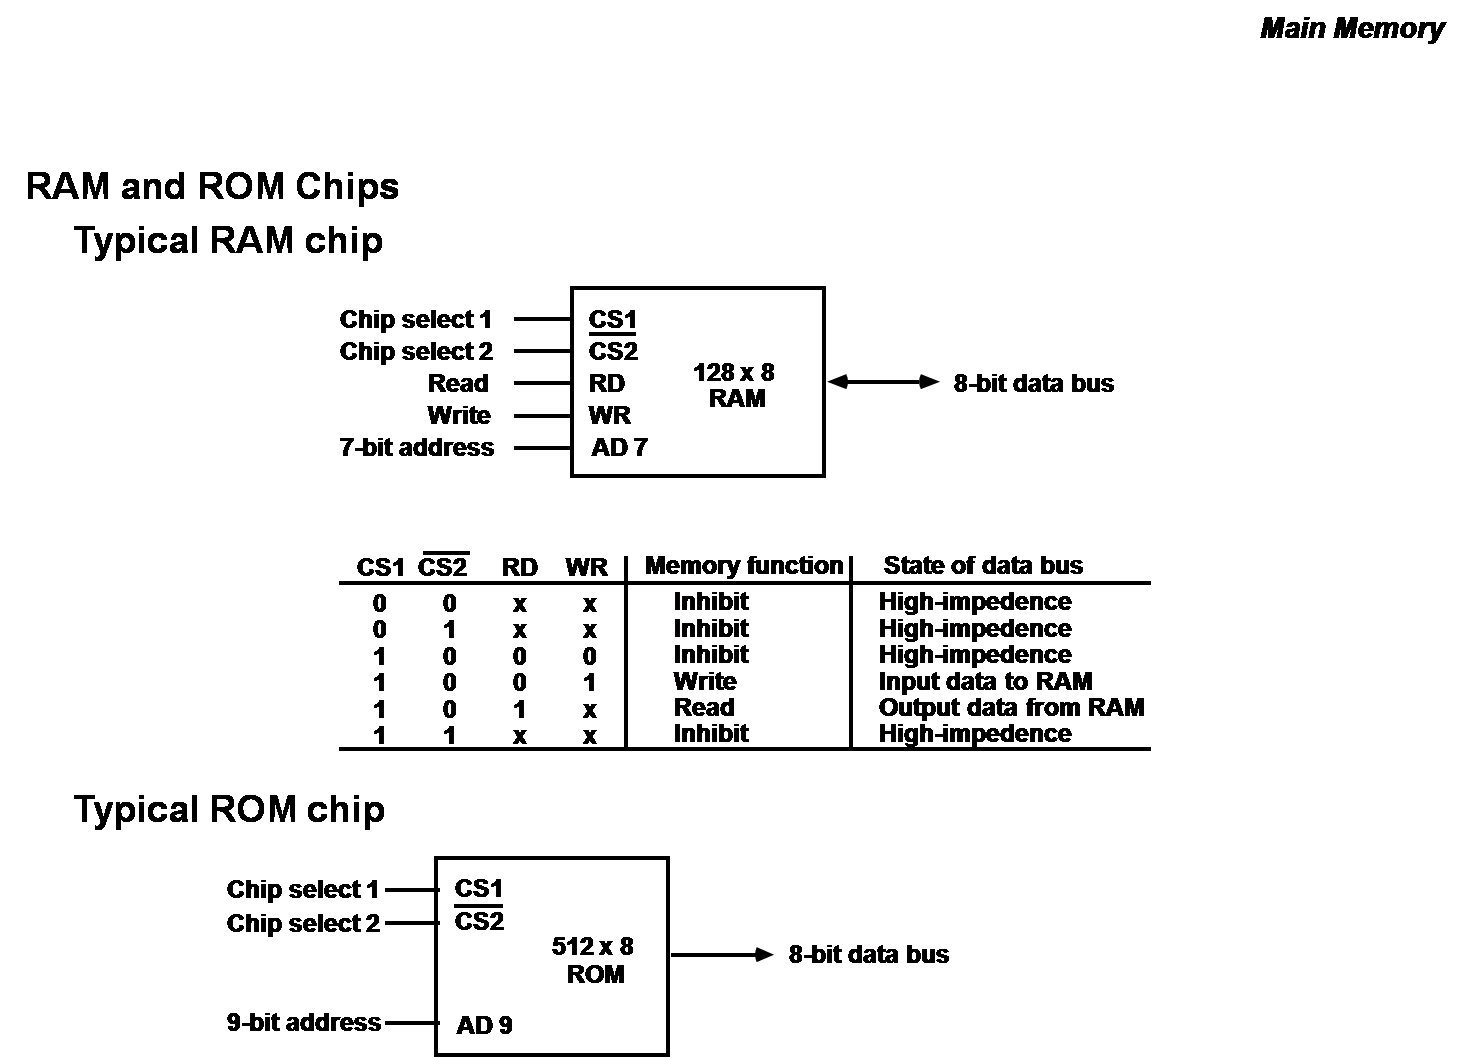 hight resolution of ram chip diagram wire management wiring diagram memory organisation computer organization and architecture block diagram